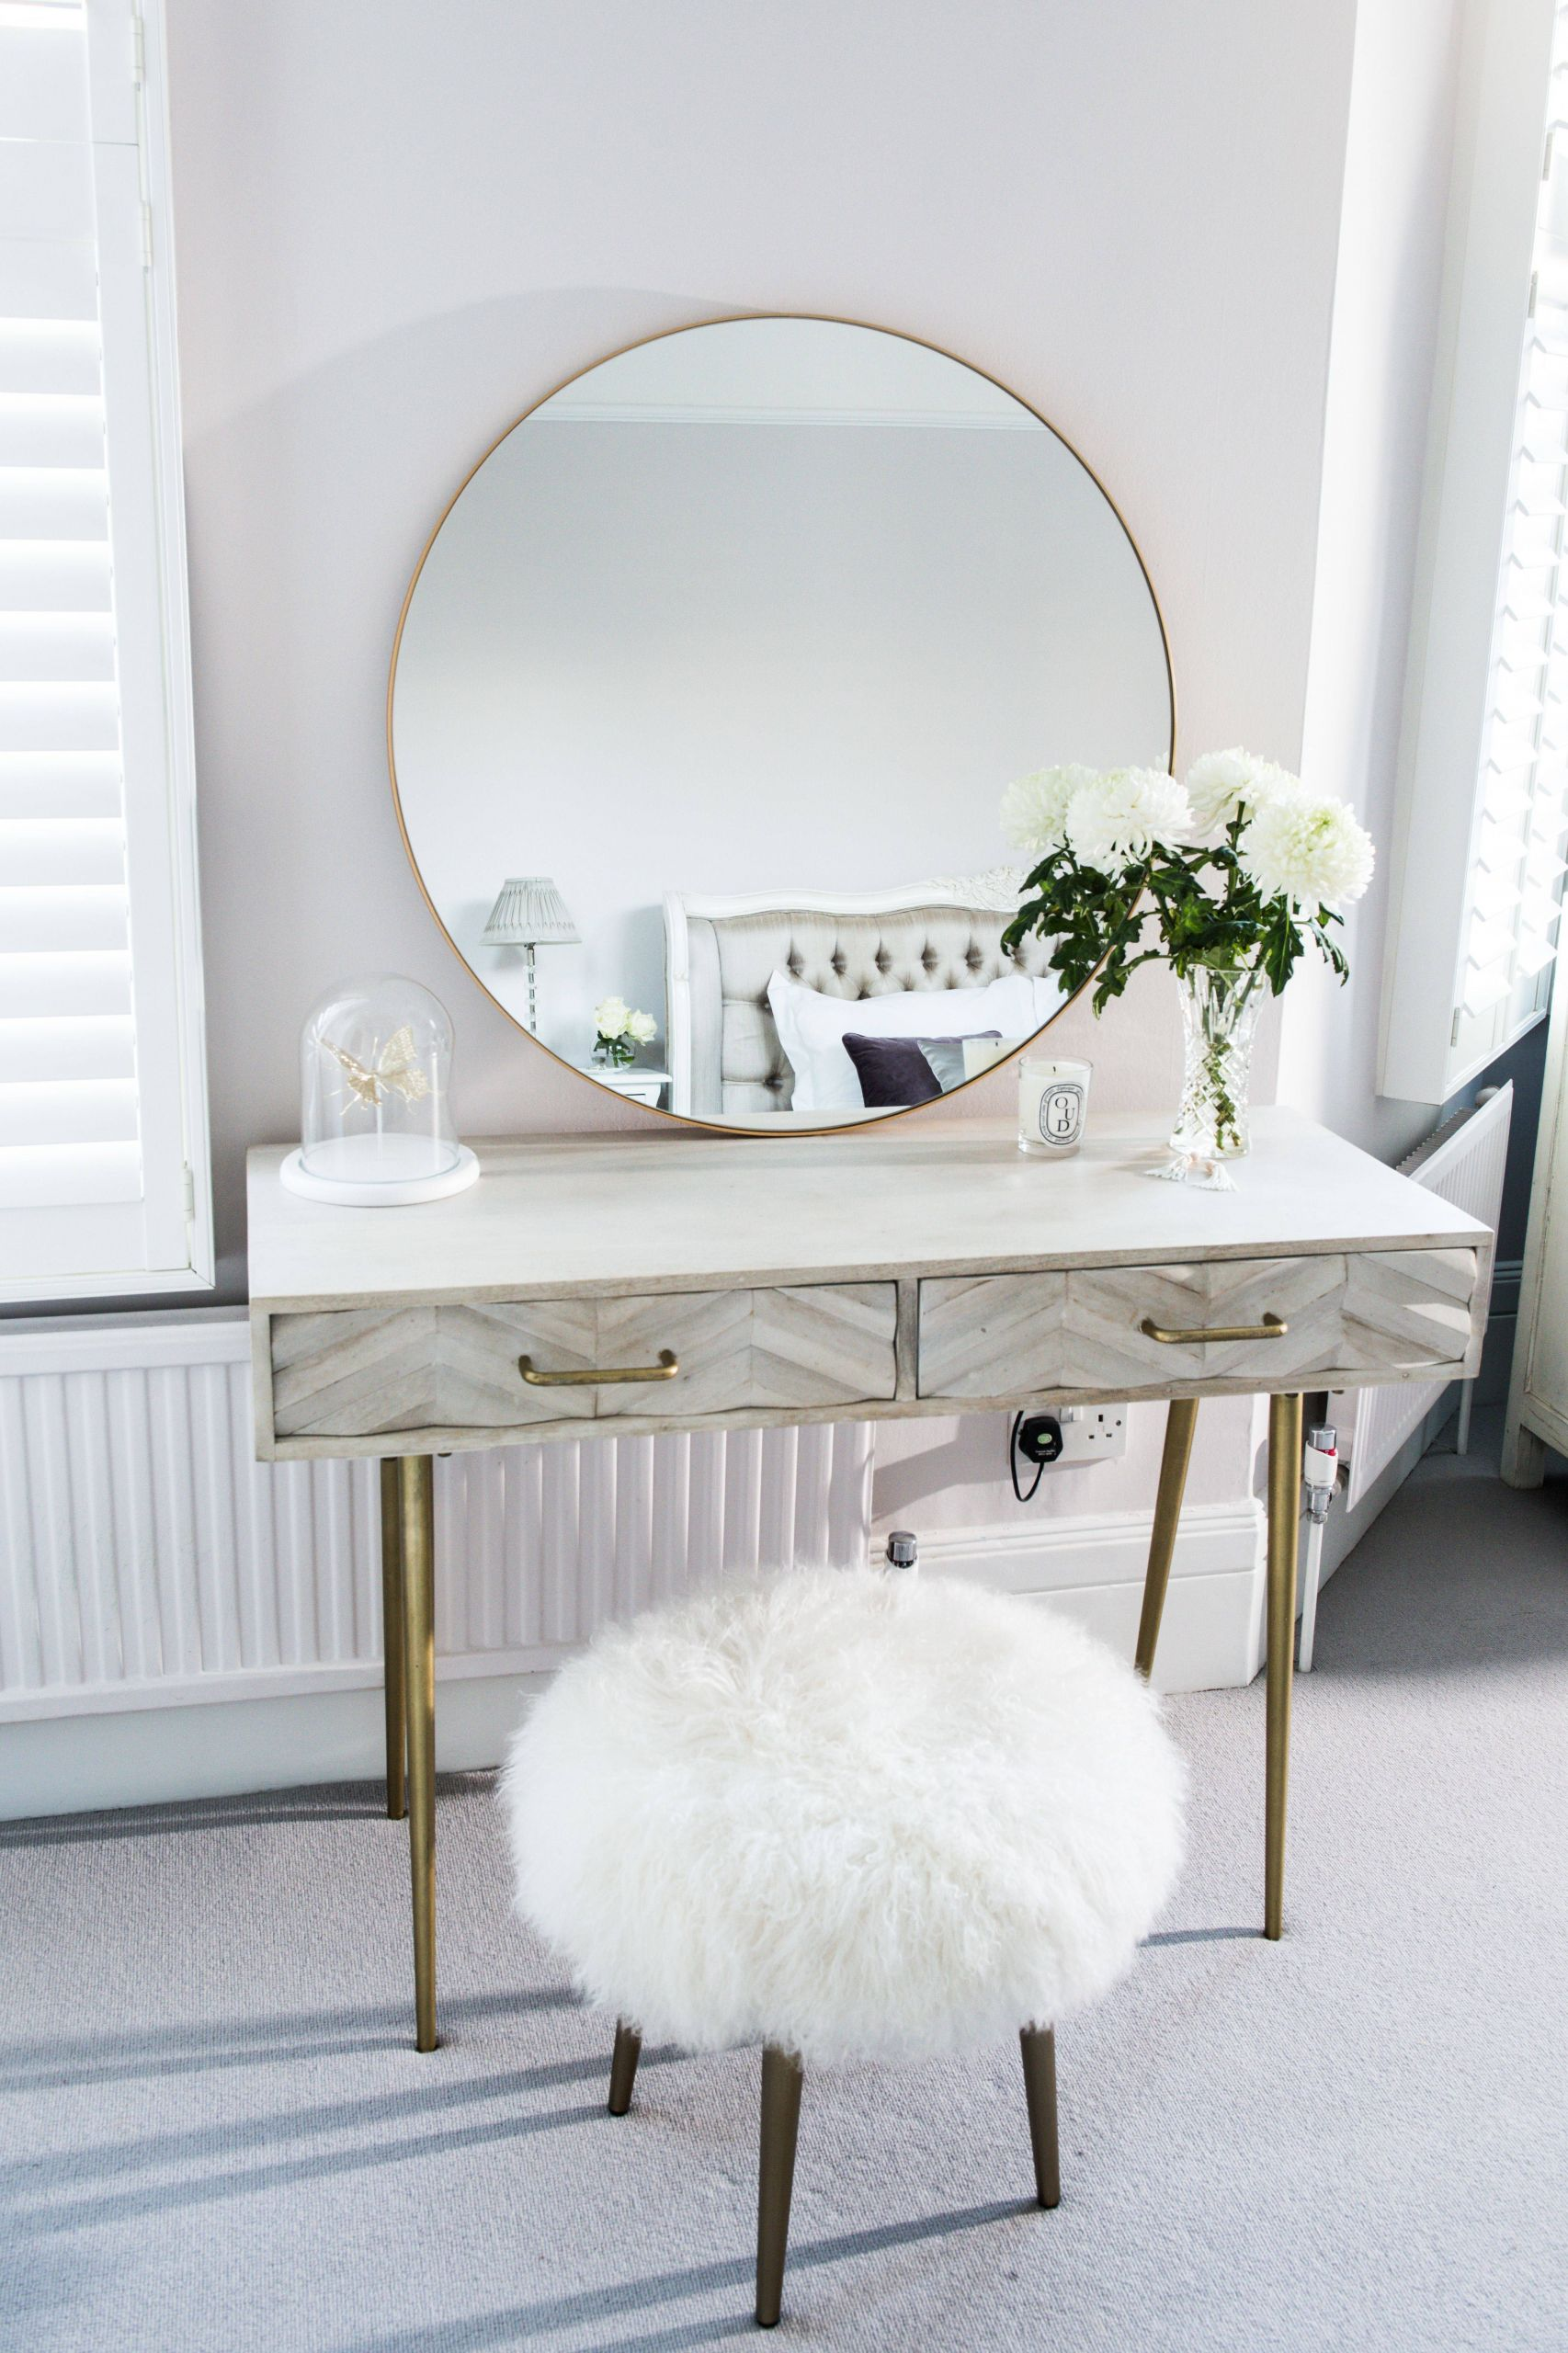 Heavenly Dressing Table Gold Framed Round Mirror From Habitat Inspirational Heavenly Dressing Table Gold Framed Round Mirror From